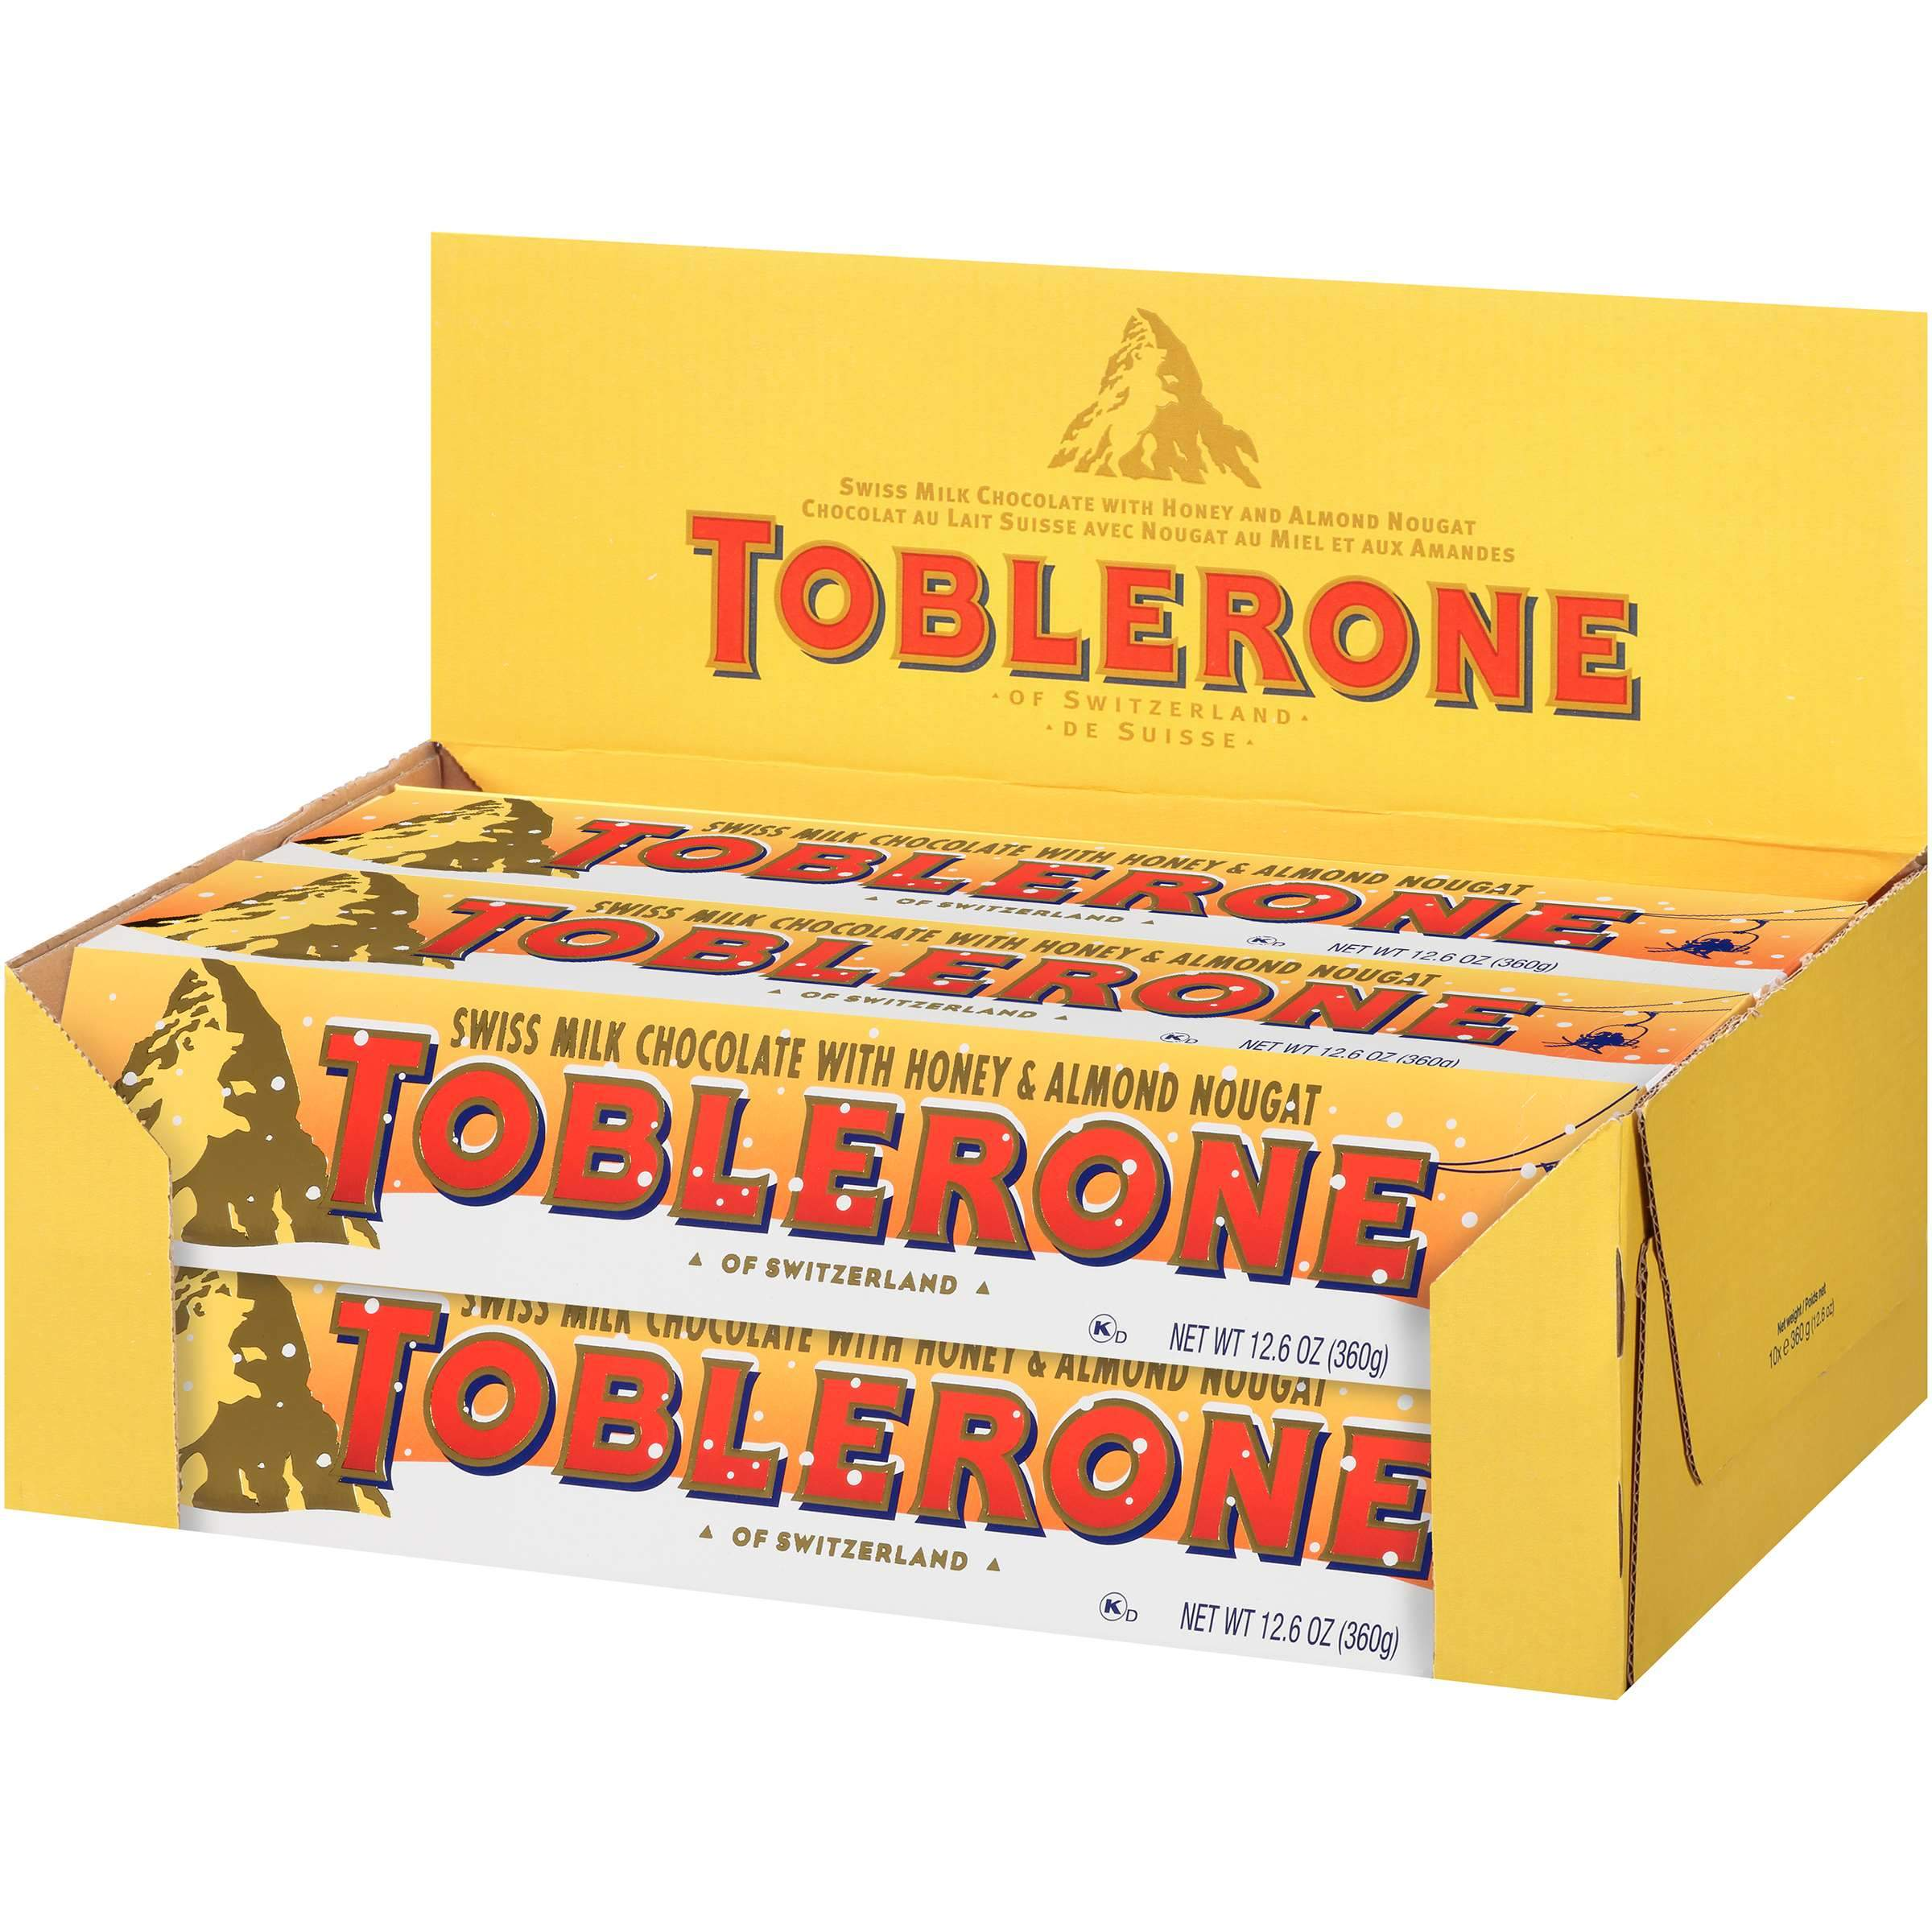 Toblerone Swiss Chocolate with Honey & Almond Nougat Meltable Toblerone